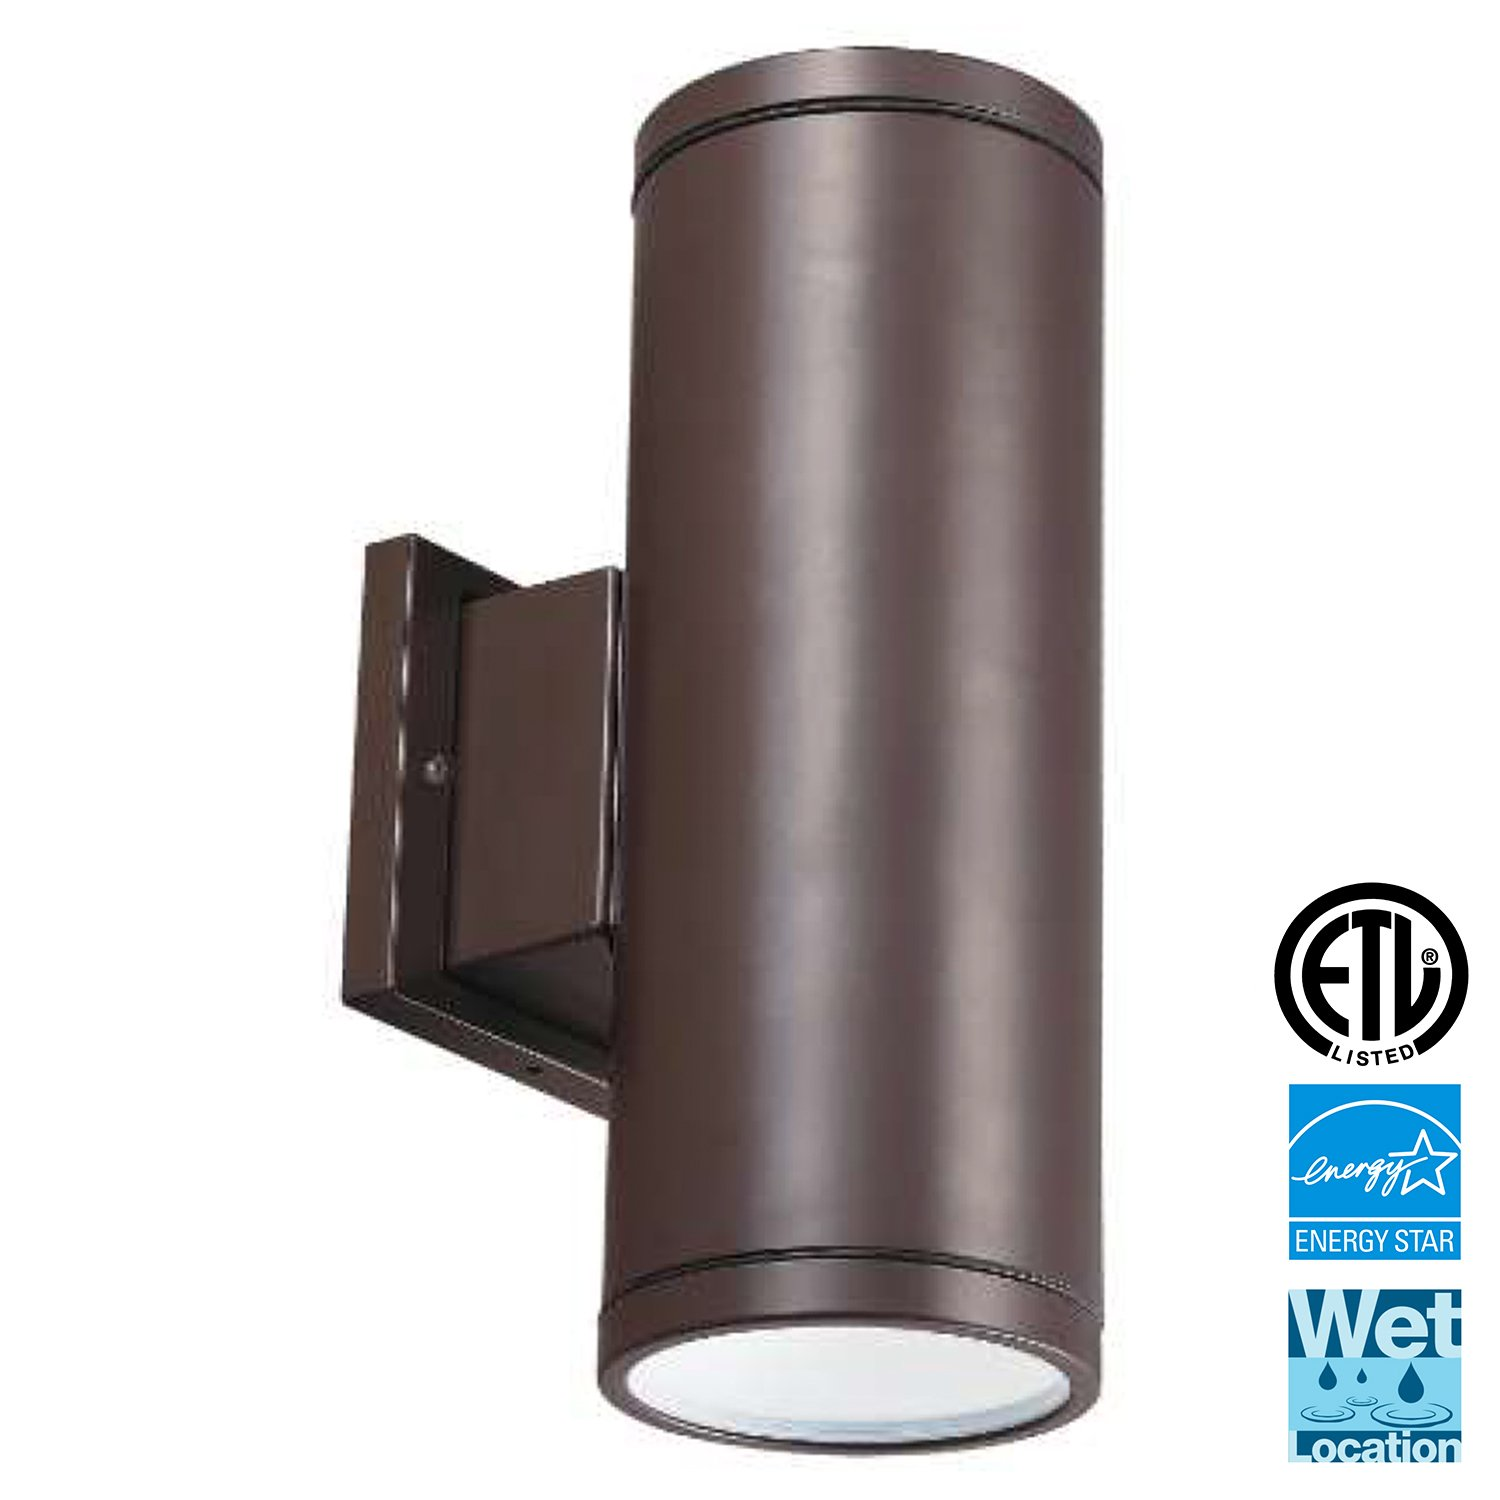 LED Outdoor Up & Down Wall Light, Light Blue™ 12'' Waterproof and Outdoor Lighting Fixture for Building Home Security and Walkways, 3000K Soft White, 1260 Lumens, ETL and Energy Star certified by Light Blue USA